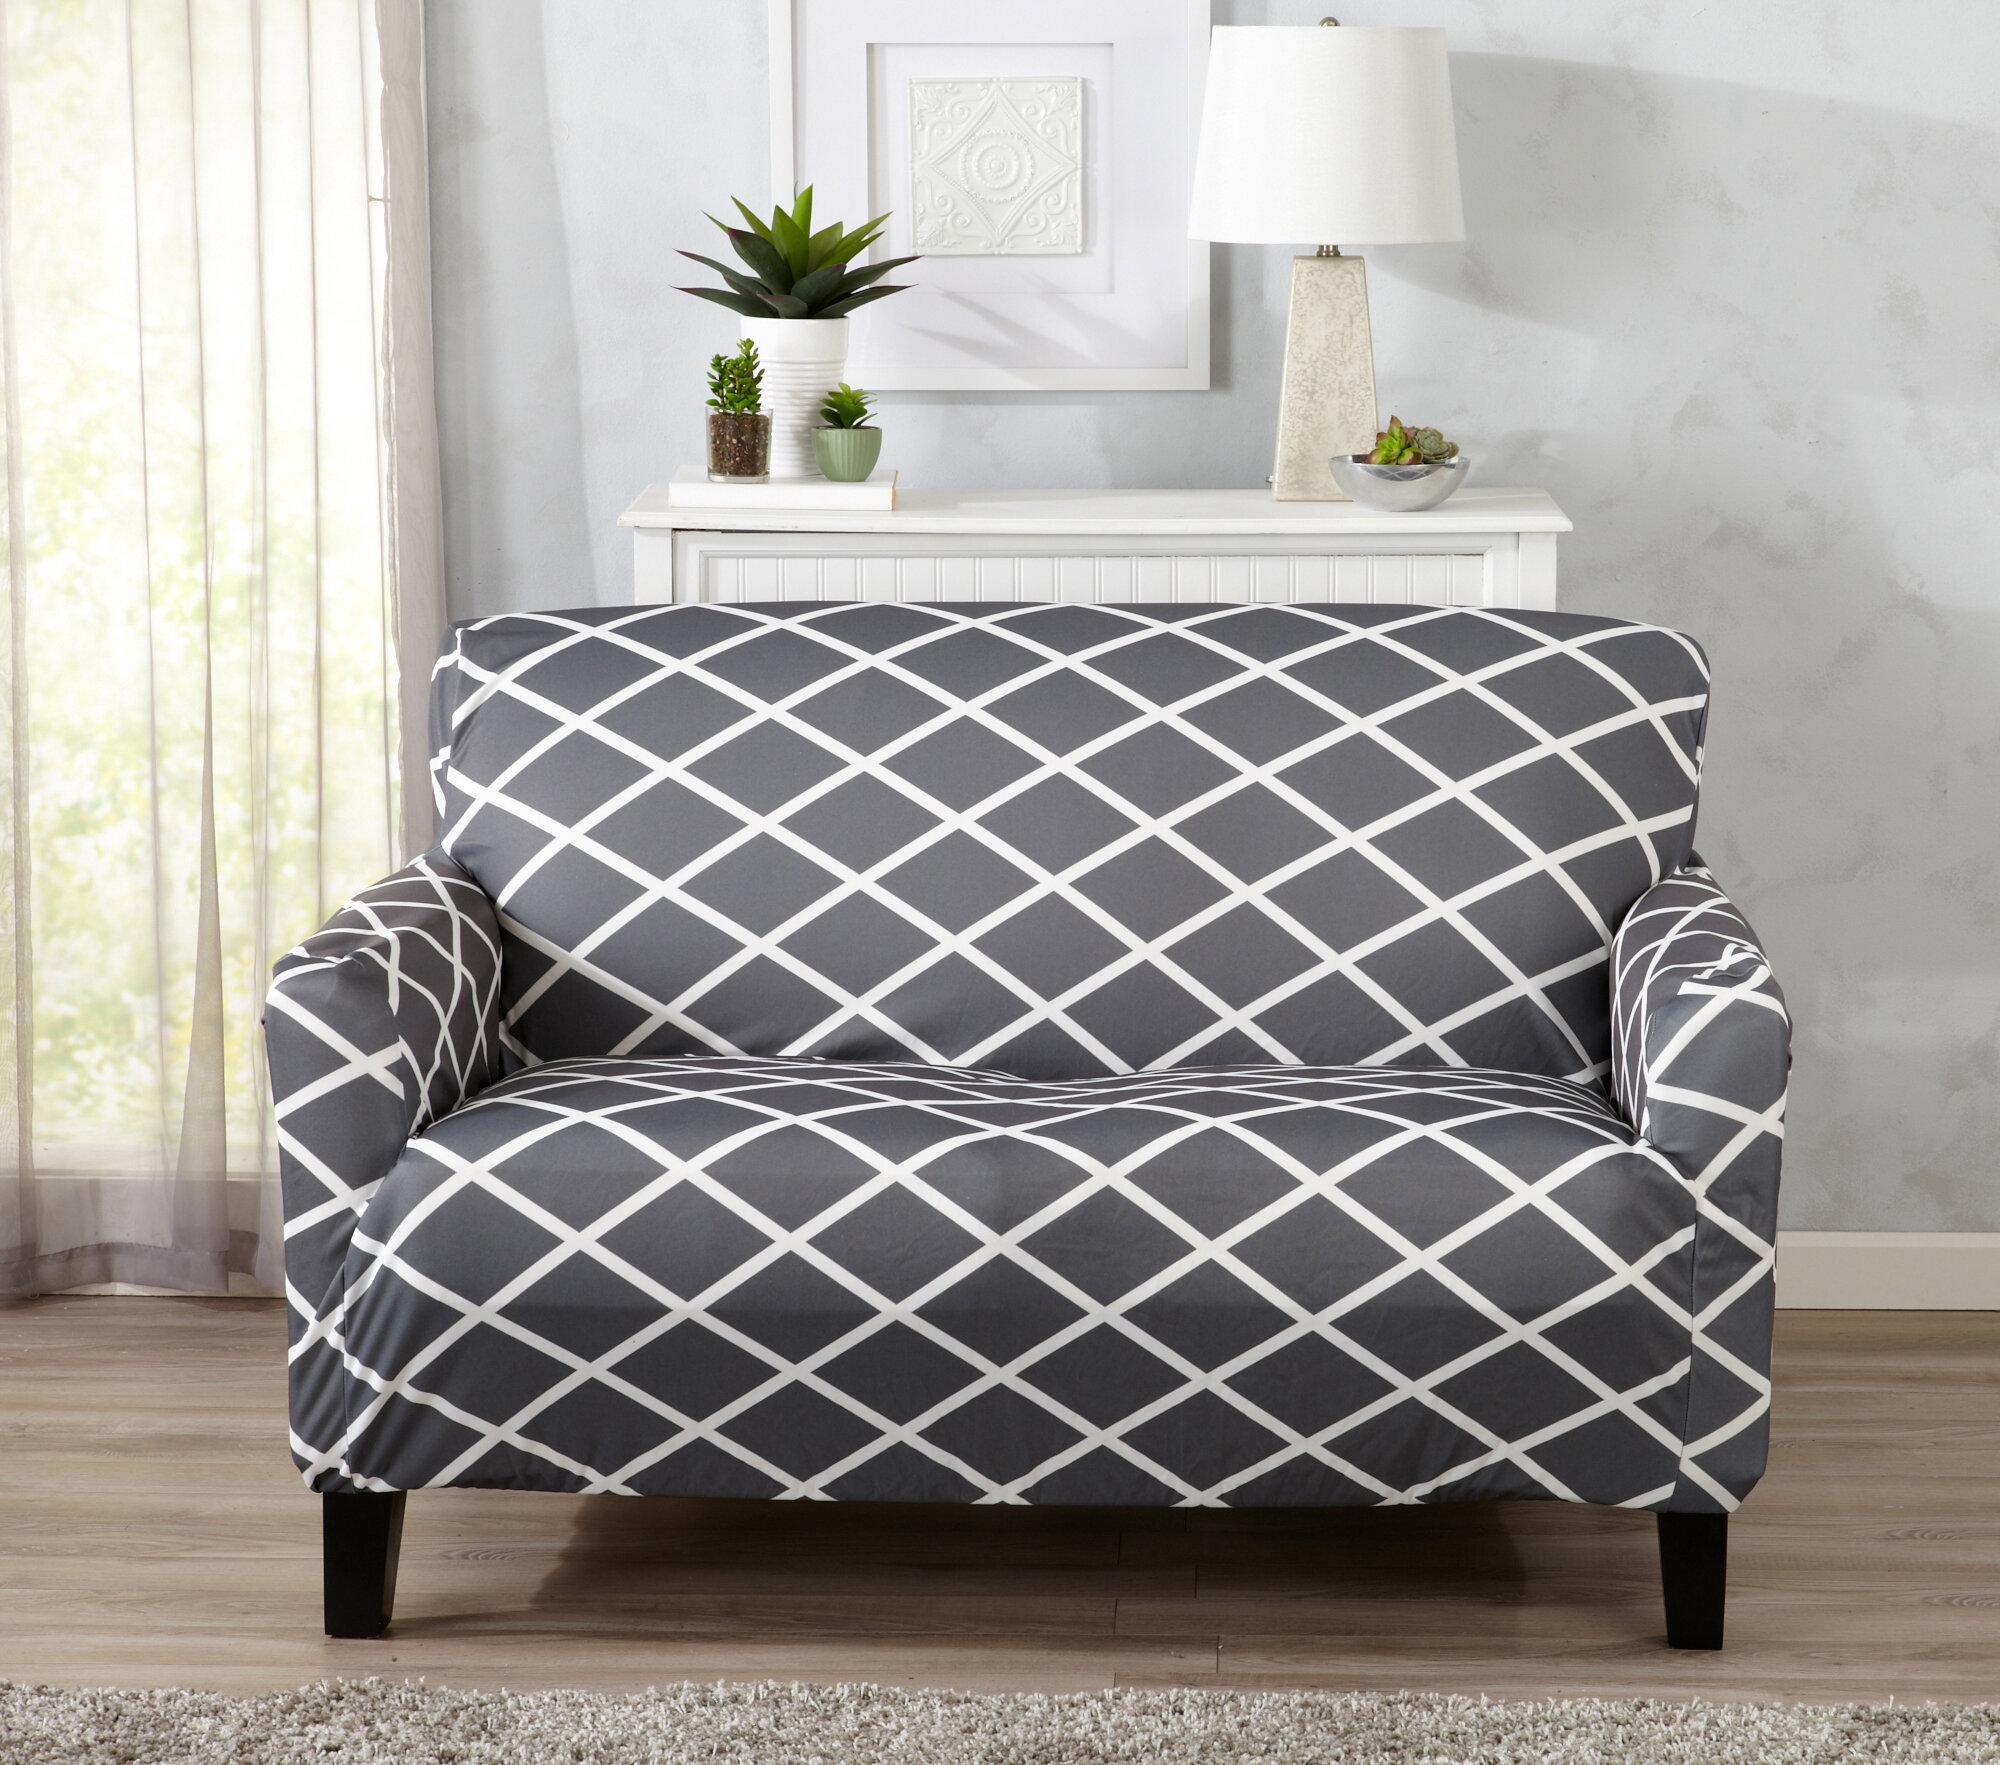 covers slipcovers no chair sofas cushions diy loveseat of cover slipcover cushion sew sofa with replacement awesome ideas t for couch photograph loveseats piece